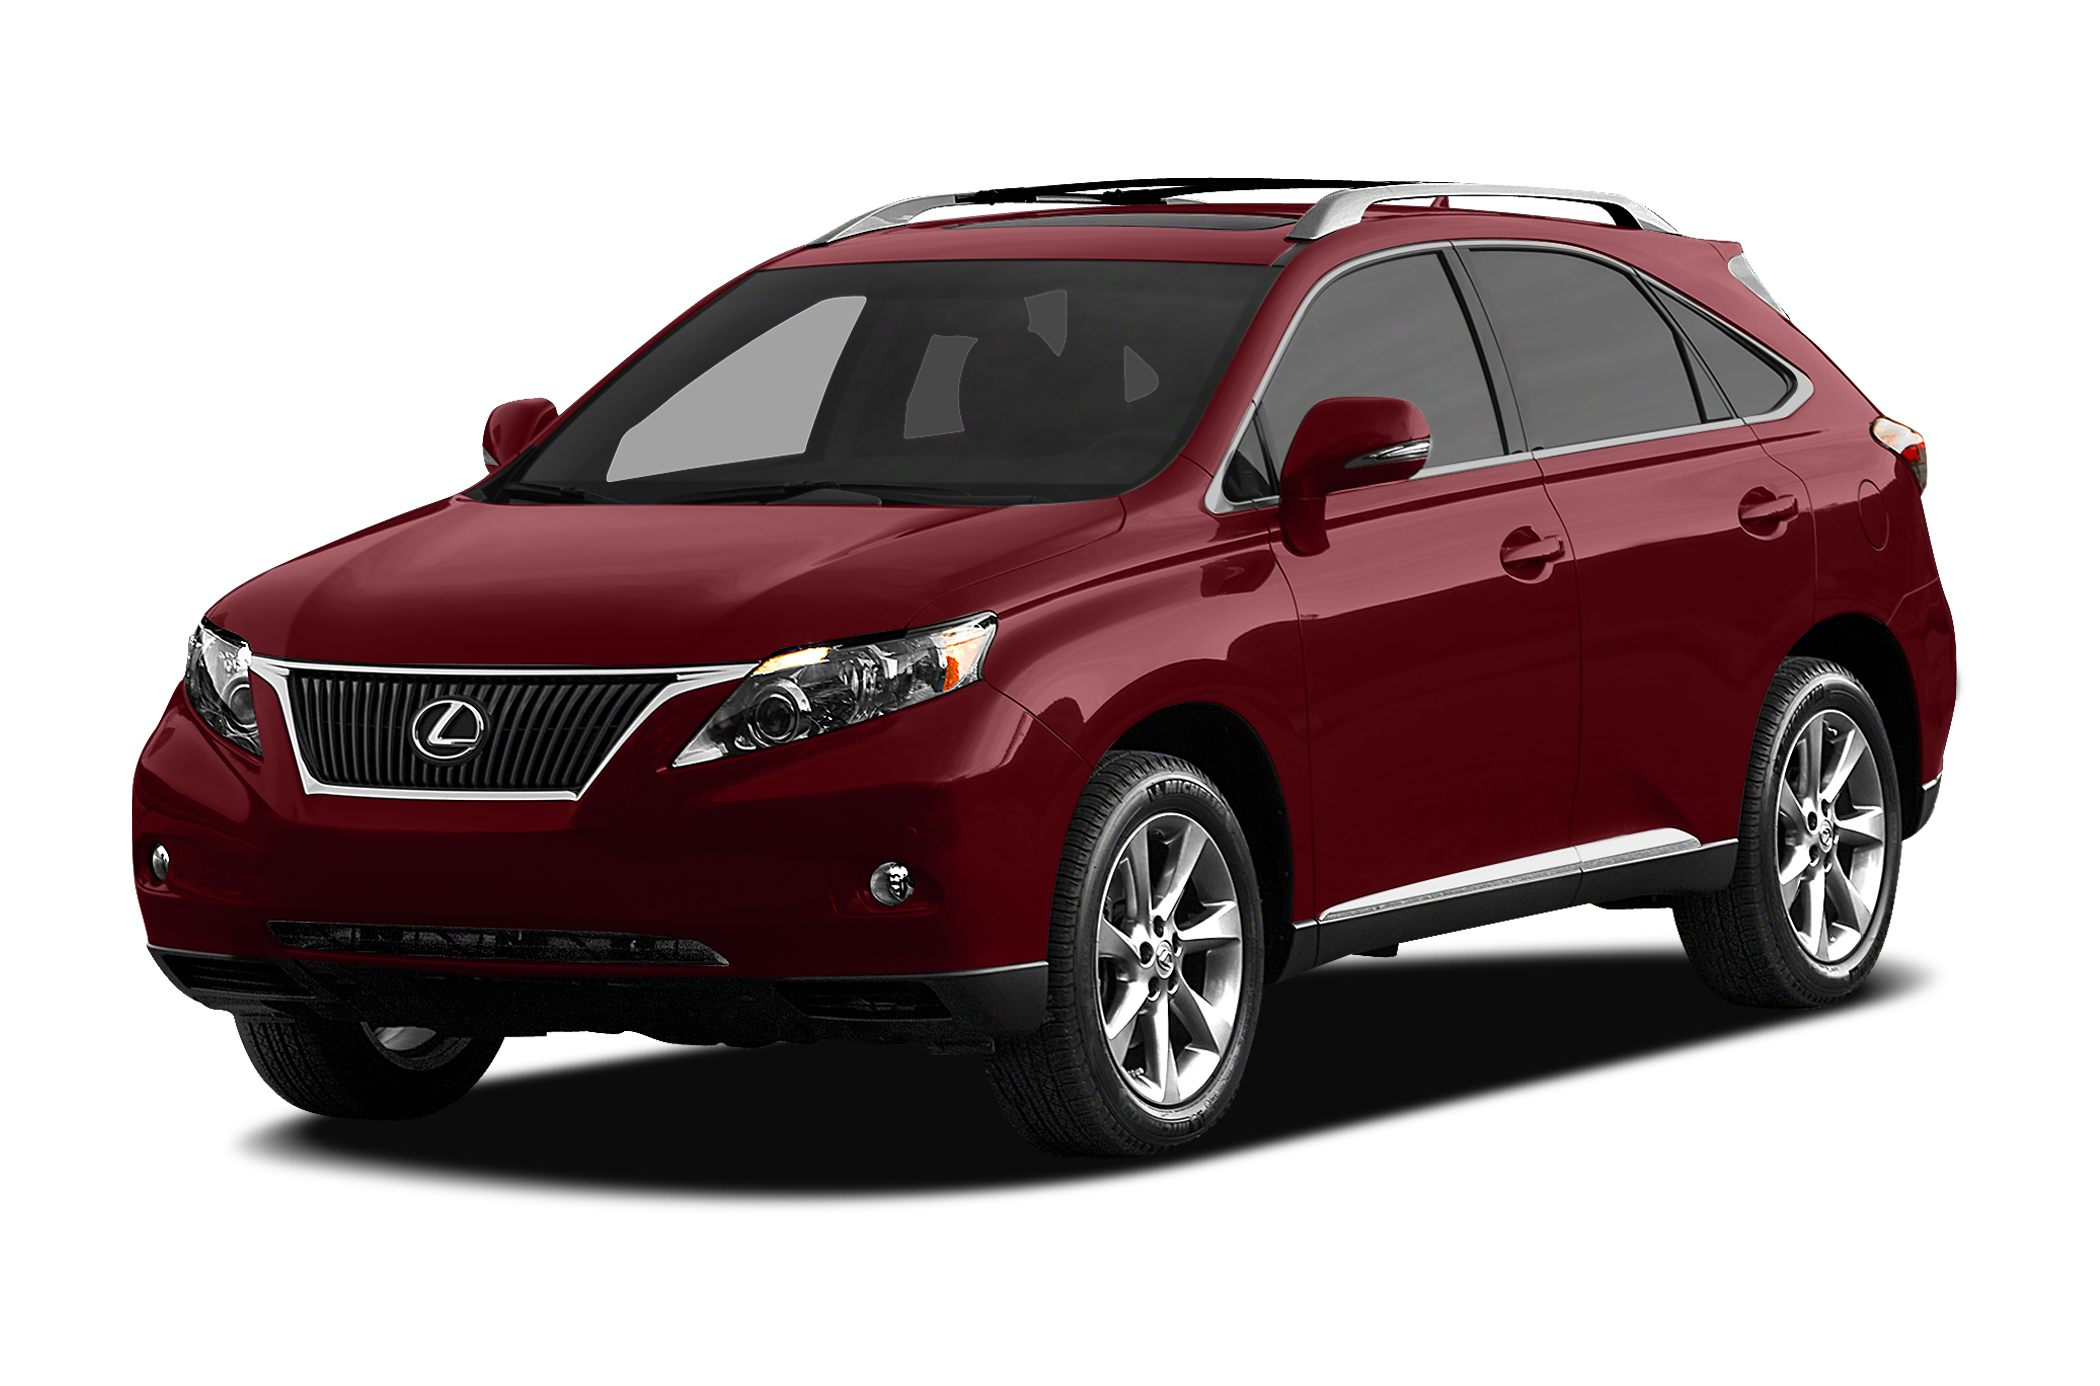 2012 Lexus RX 350 Base SUV for sale in Kalispell for $37,599 with 39,878 miles